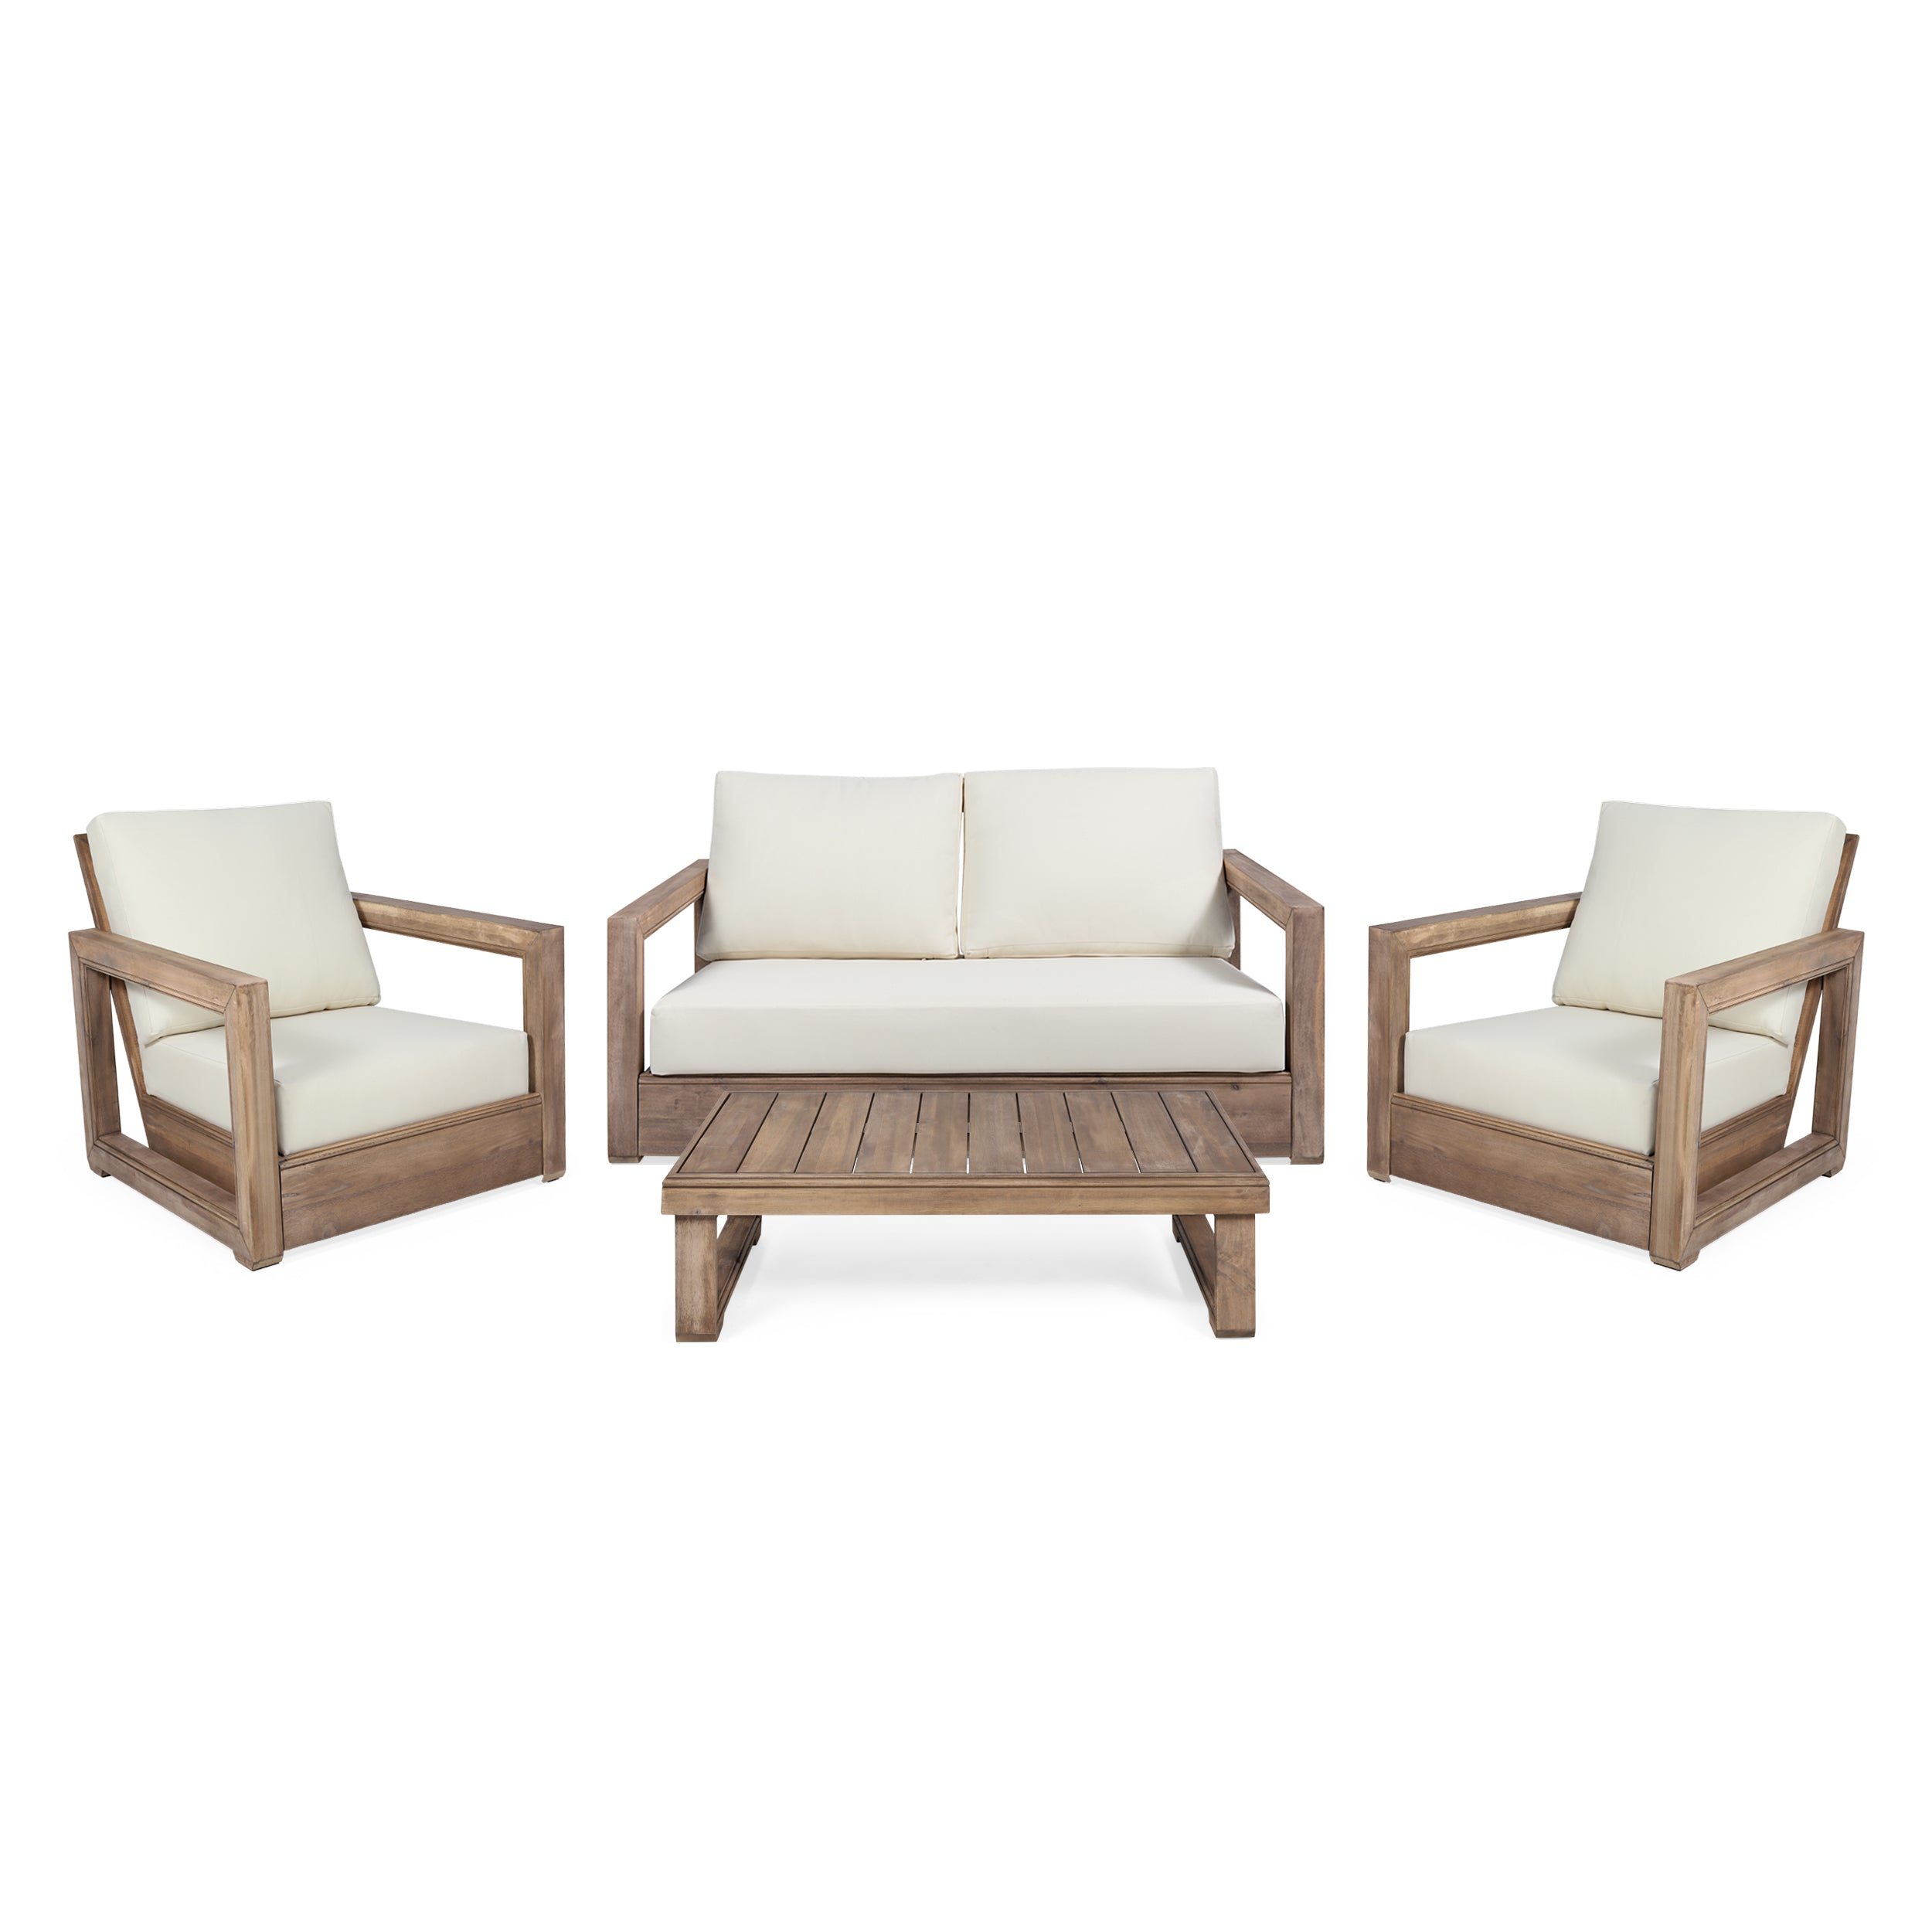 Andrae Outdoor 4 Seater Acacia Wood Chat Set with Water Resistant Cushions